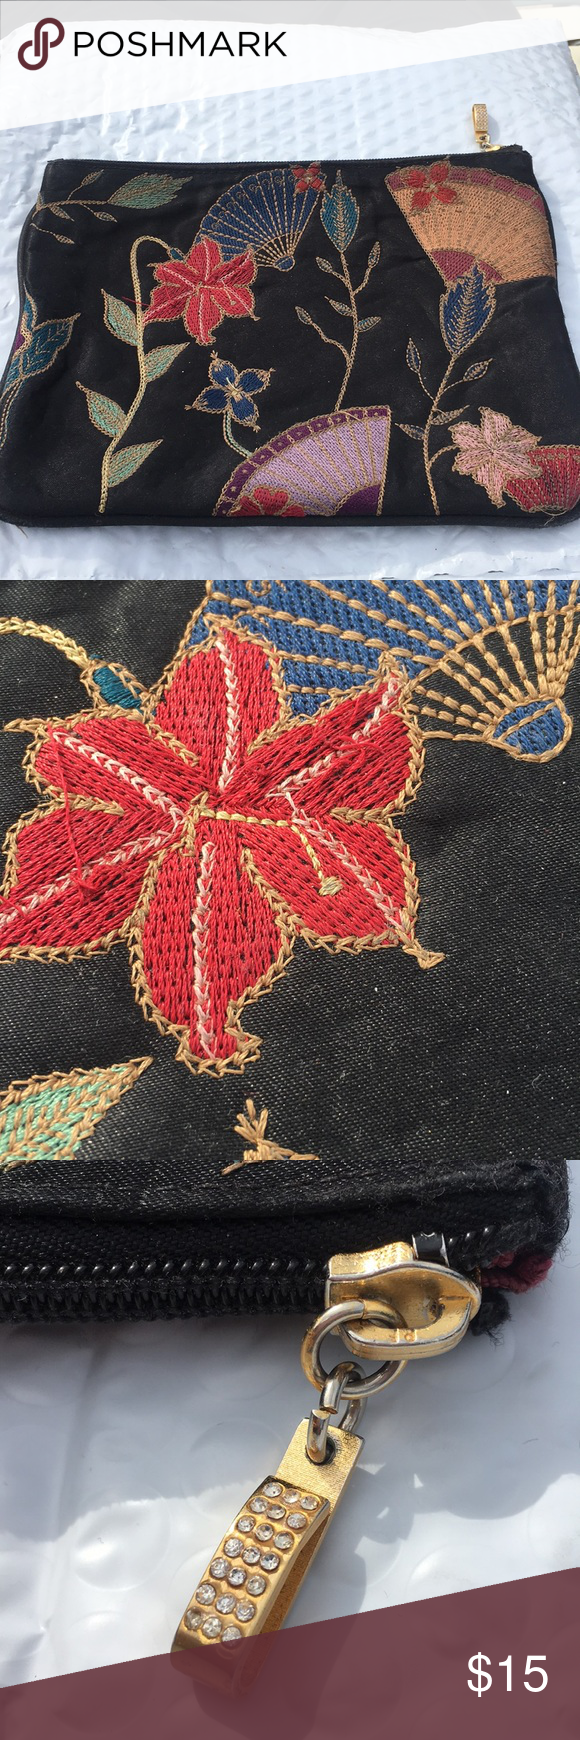 Americana Black with embroidered flower design